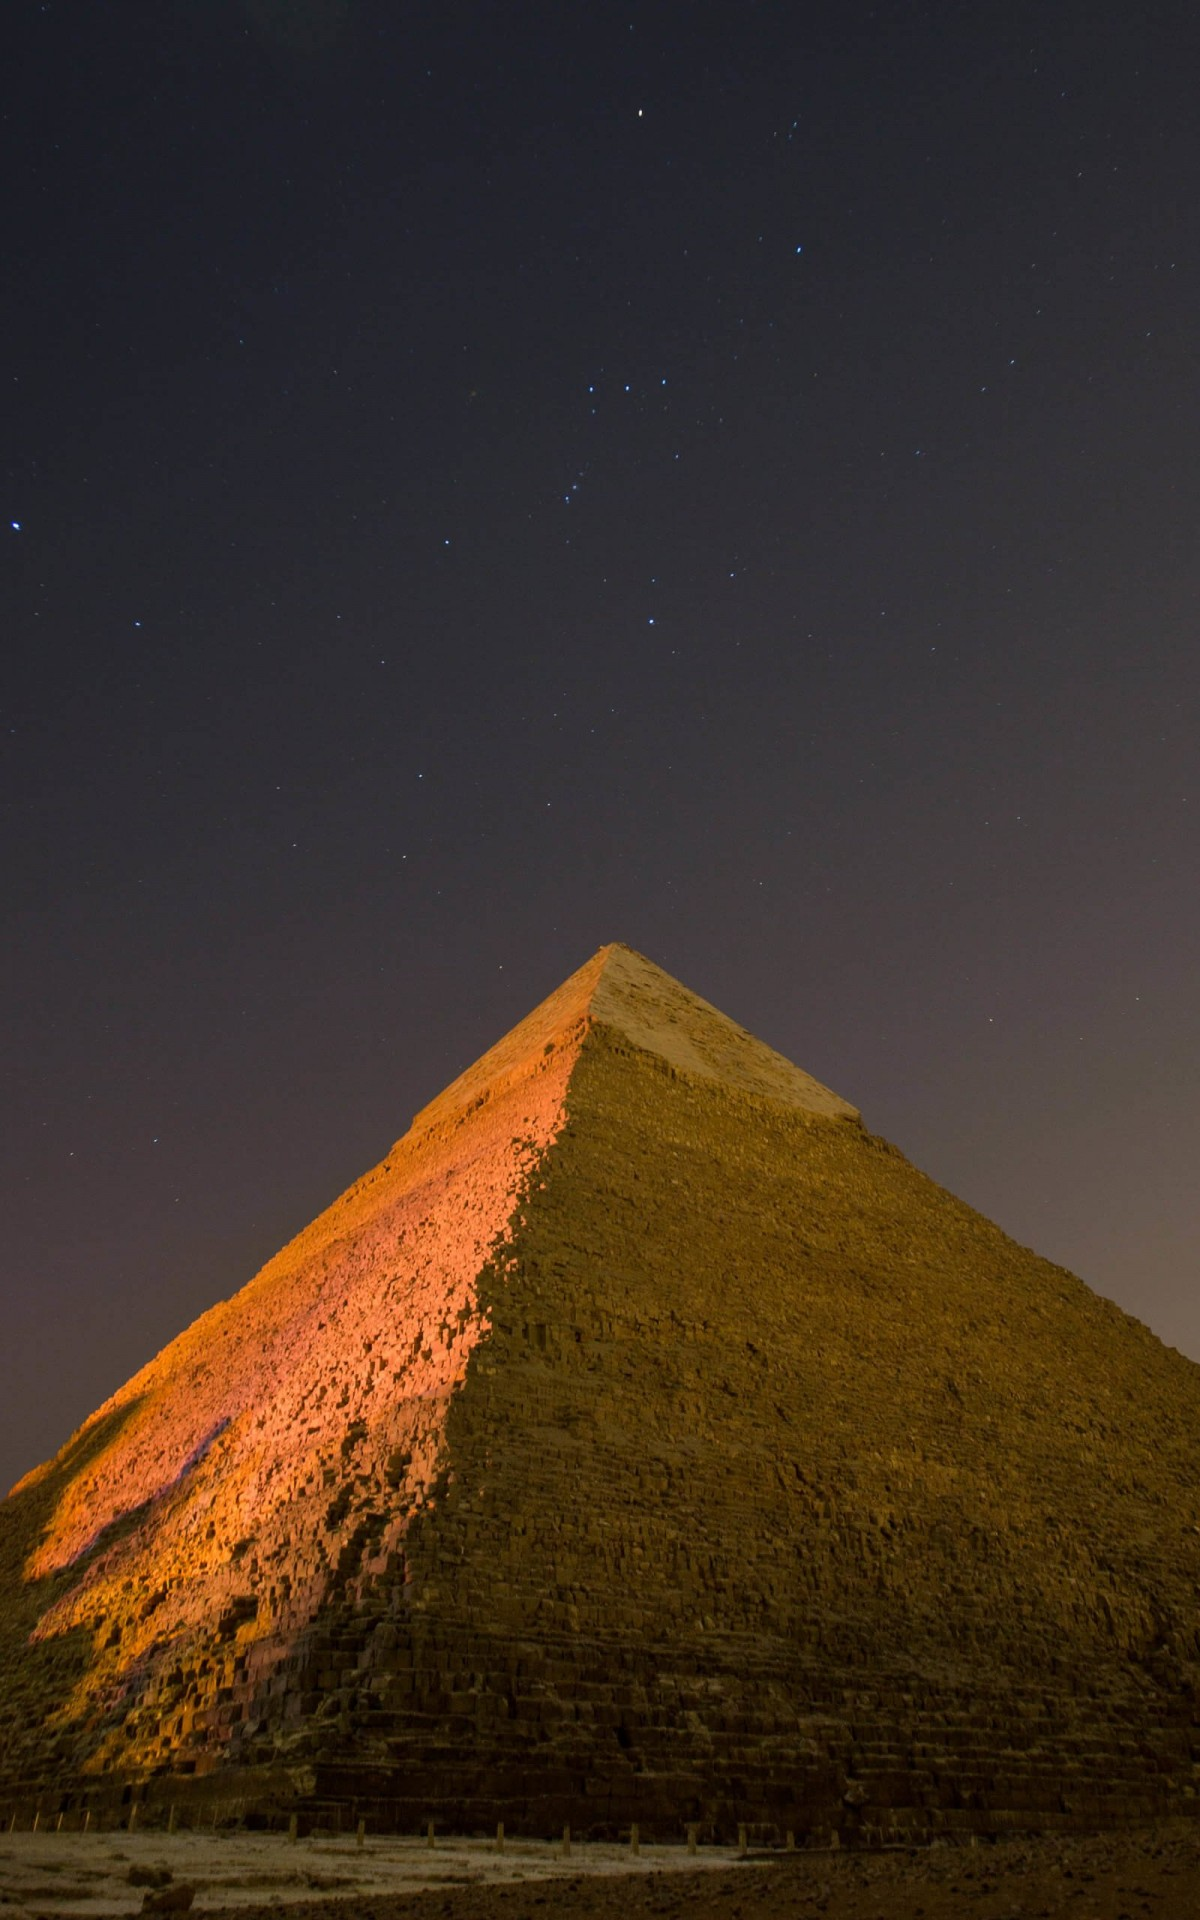 Pyramid by Night Wallpaper for Amazon Kindle Fire HDX